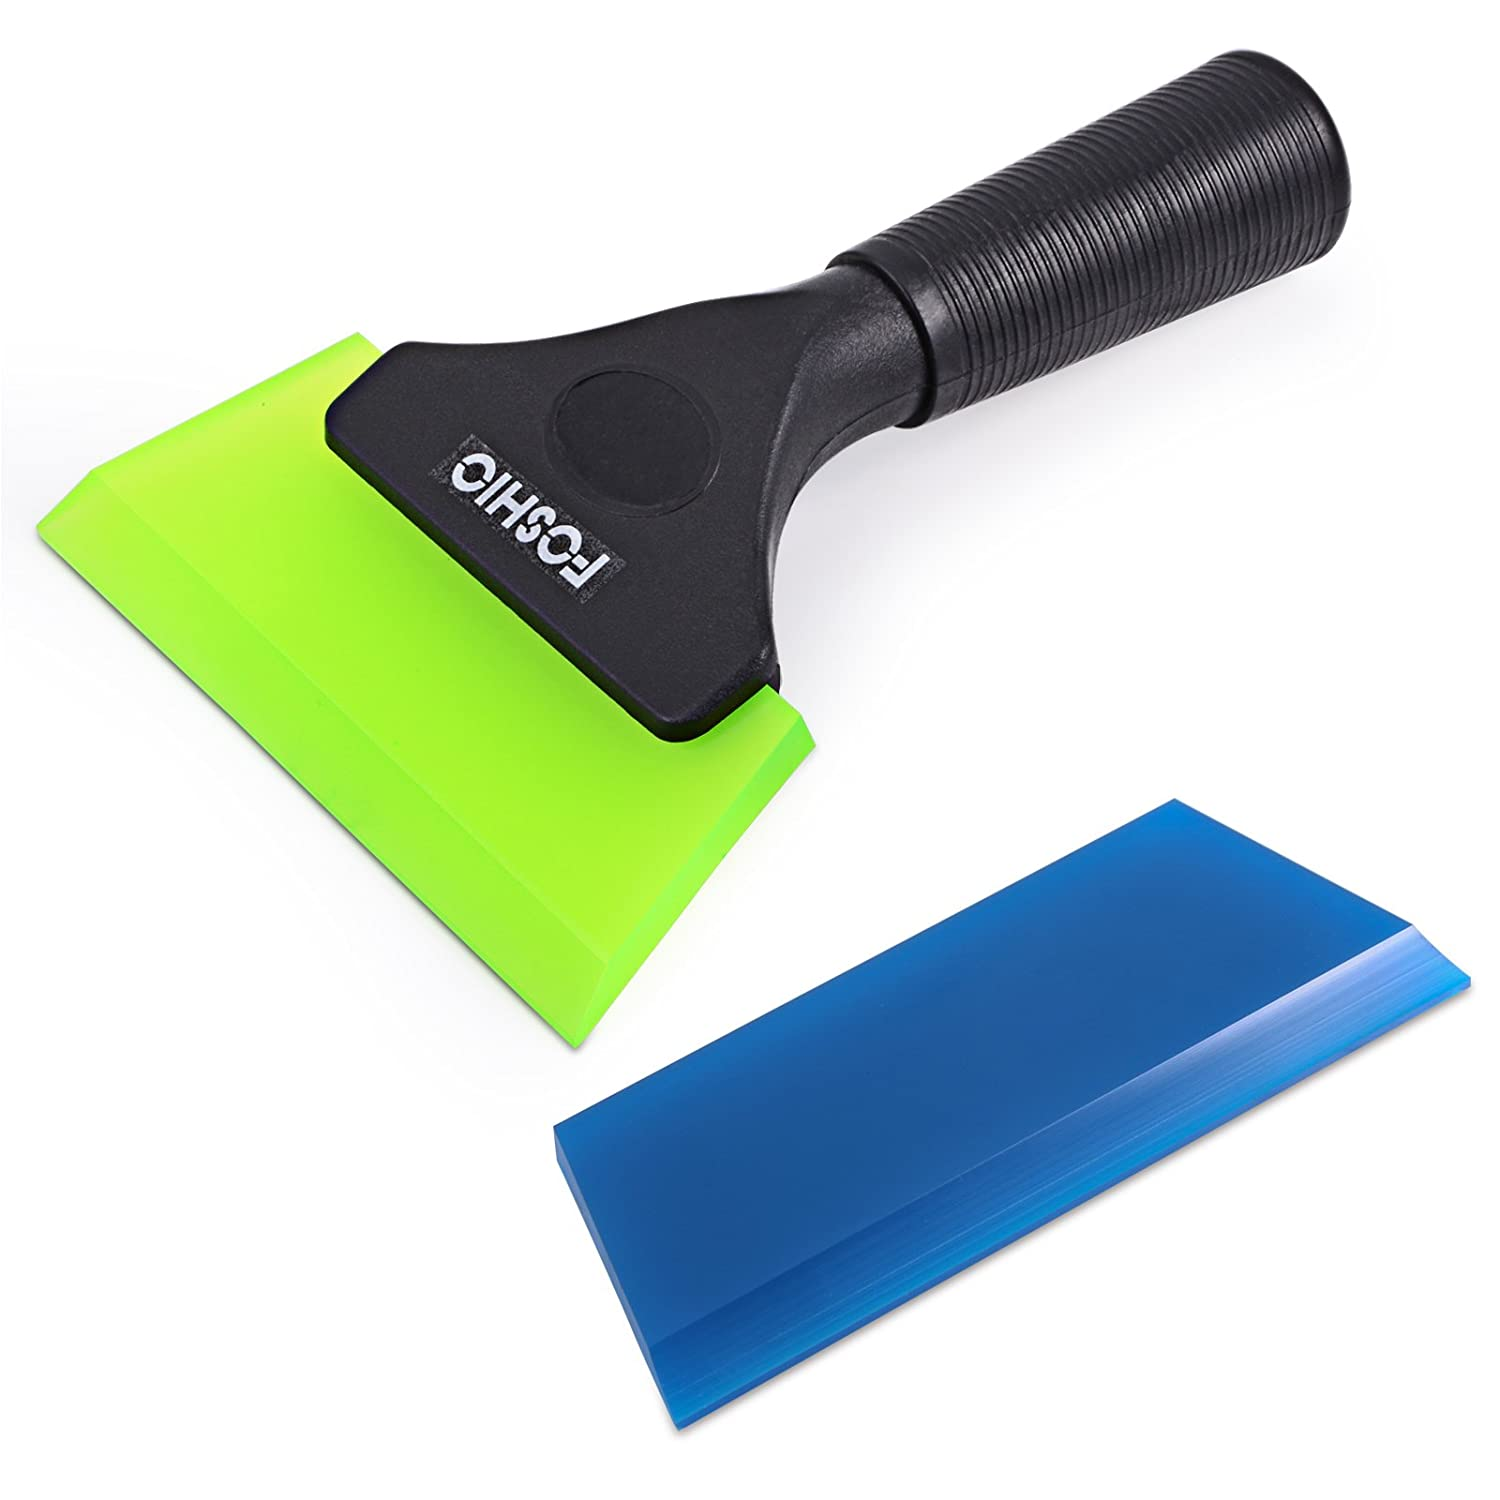 FOSHIO 5 Inch Pro Squeegee with Beveled Rubber Blade Black Plastic Handle Durable Rubber Squeegee for Window Tinting, Car Vinyl, Vehicle Wrapping ,Window Glass Tint Tool 4332945828